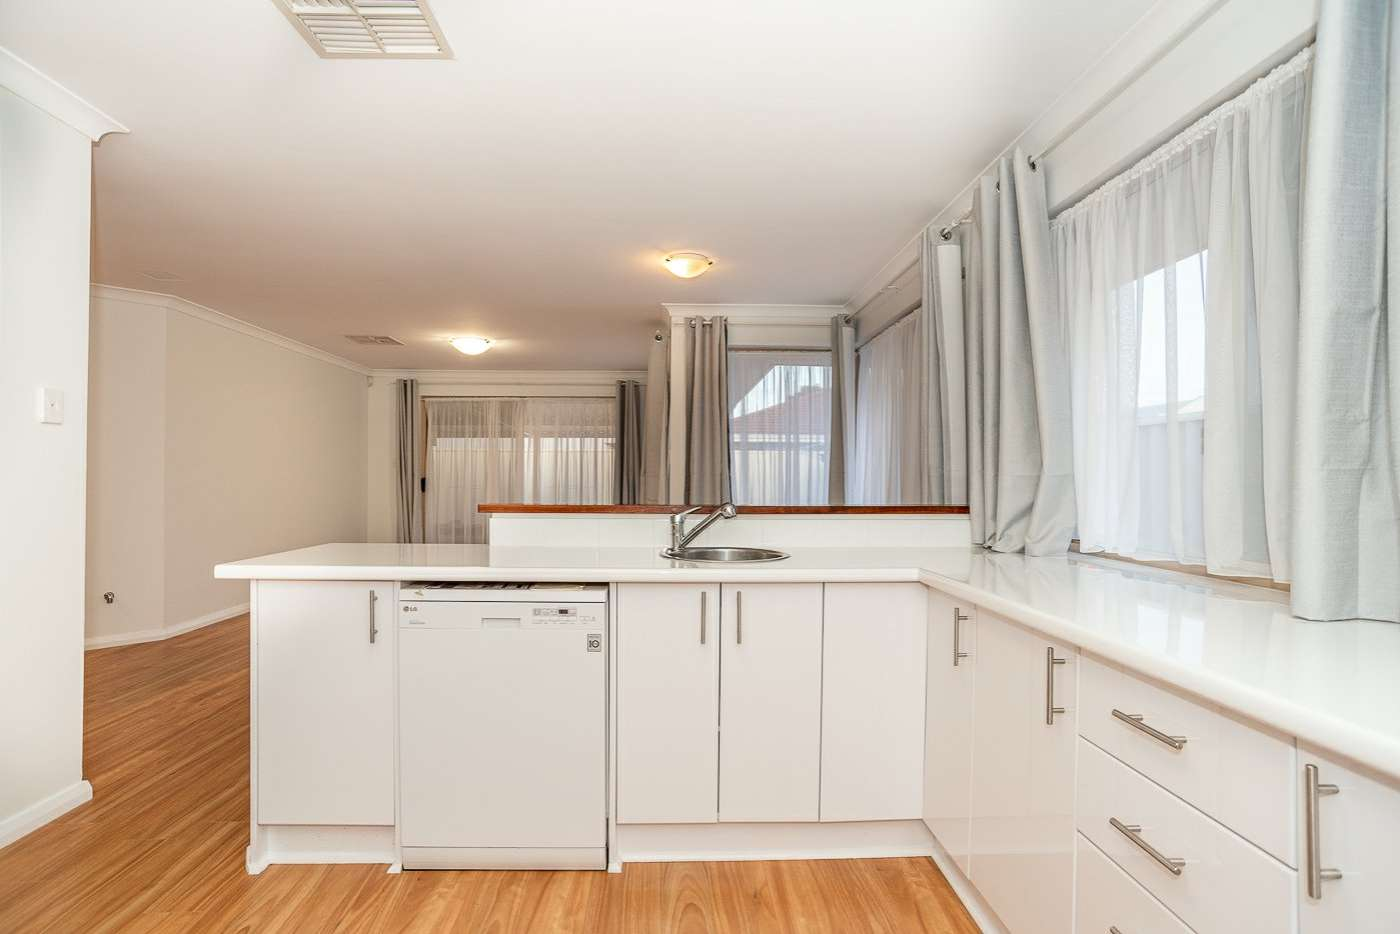 Sixth view of Homely house listing, 3 Mary Mackillop Glen, Queens Park WA 6107